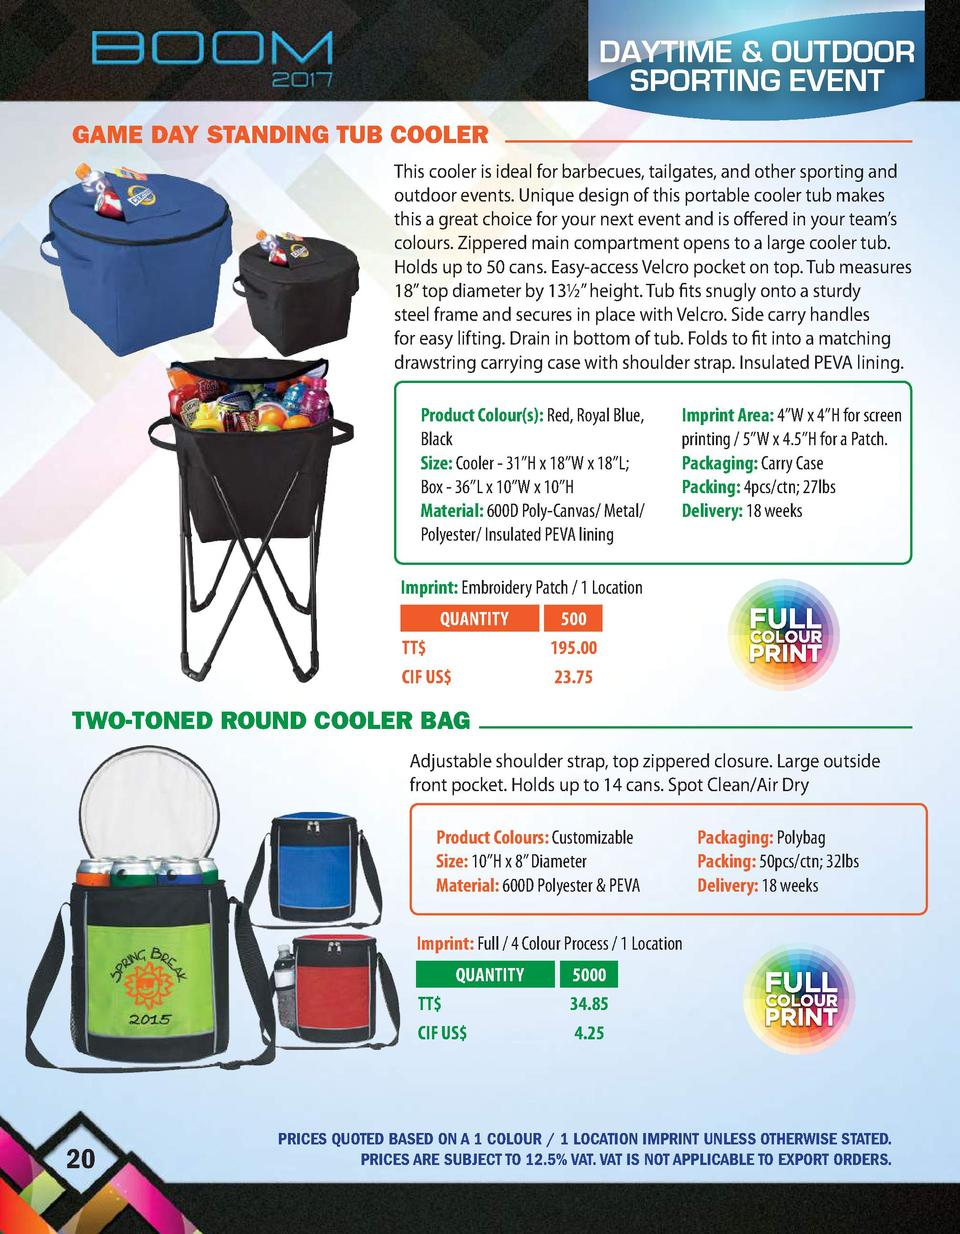 DAYTIME   OUTDOOR SPORTING EVENT GAME DAY STANDING TUB COOLER This cooler is ideal for barbecues, tailgates, and other spo...